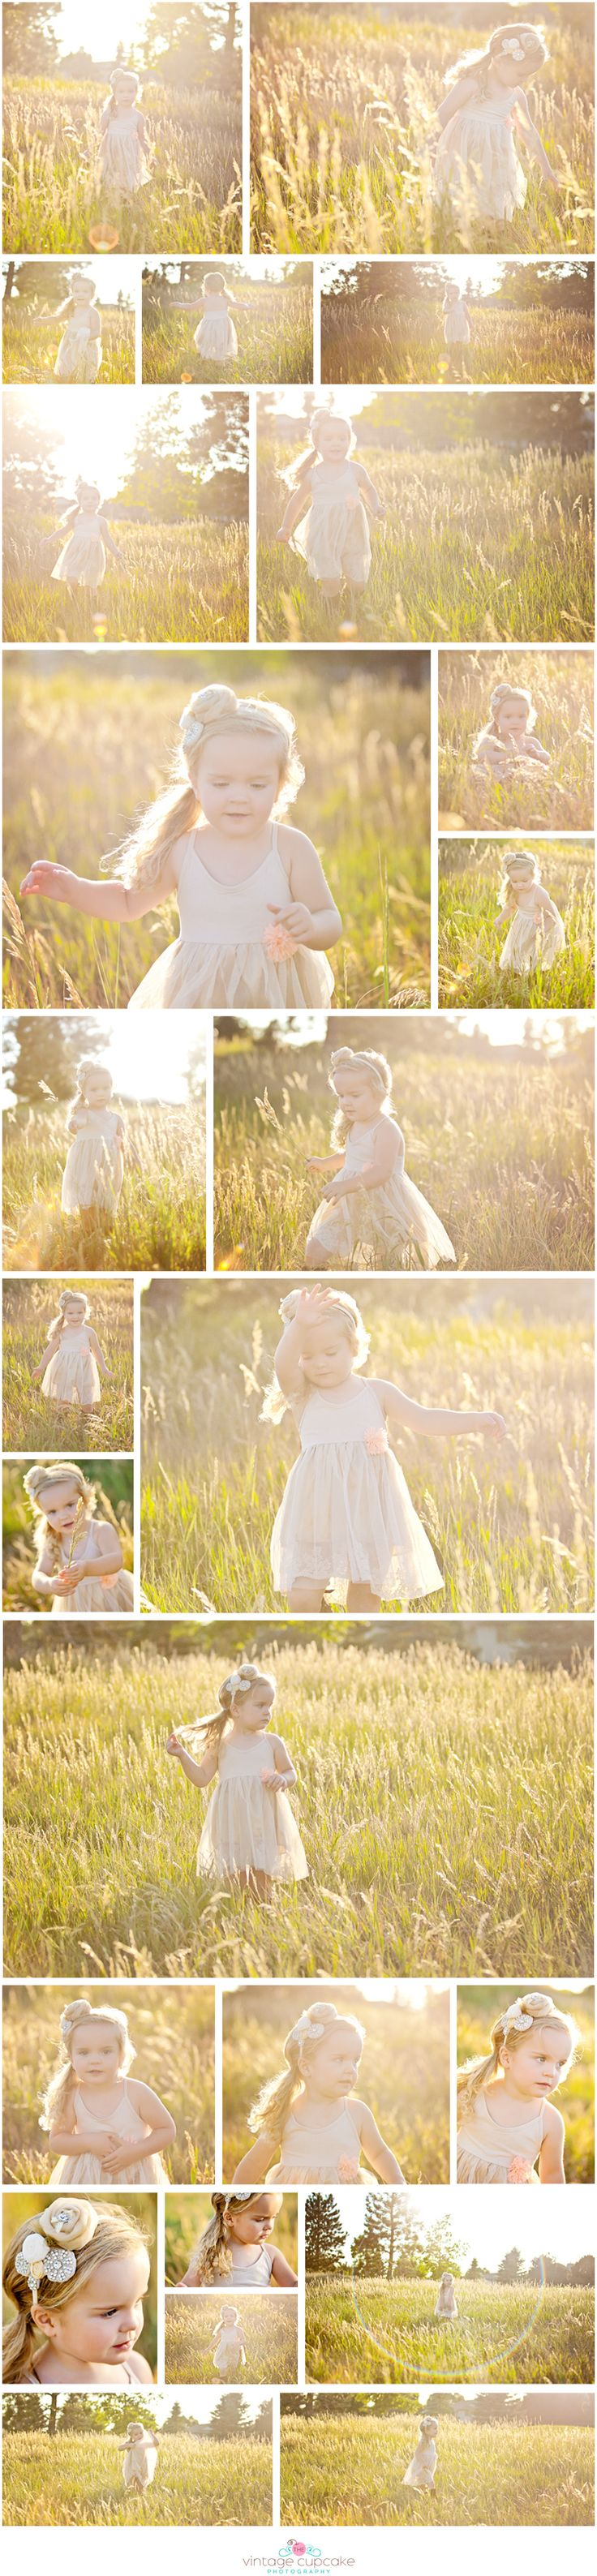 Toddler girl in vintage dress in open field. Denver, Colorado Child Photographer - The Vintage Cupcake Photography